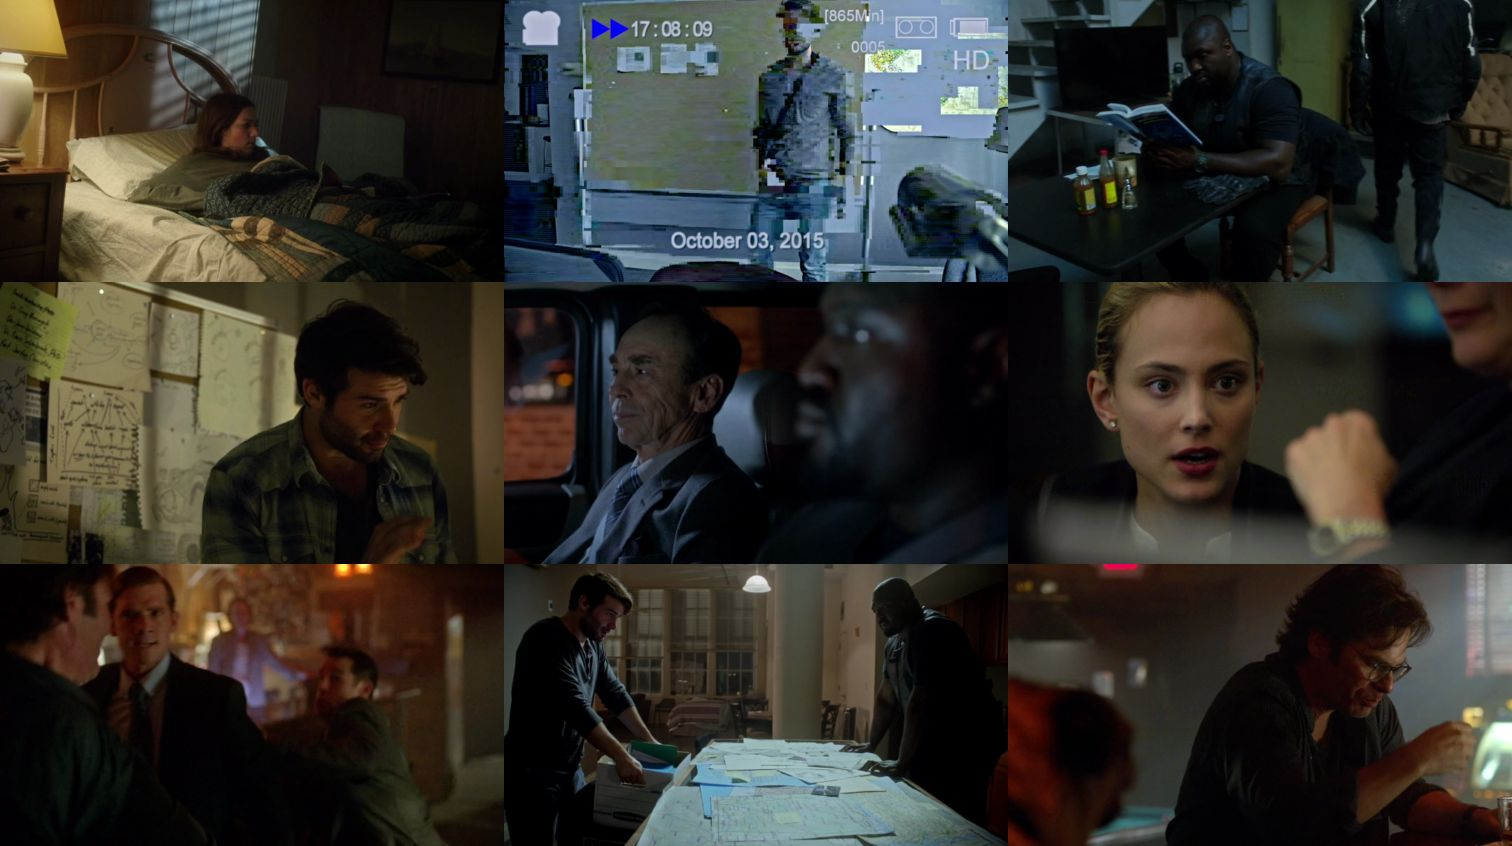 Zoo S01E13 HDTV x264-LOL